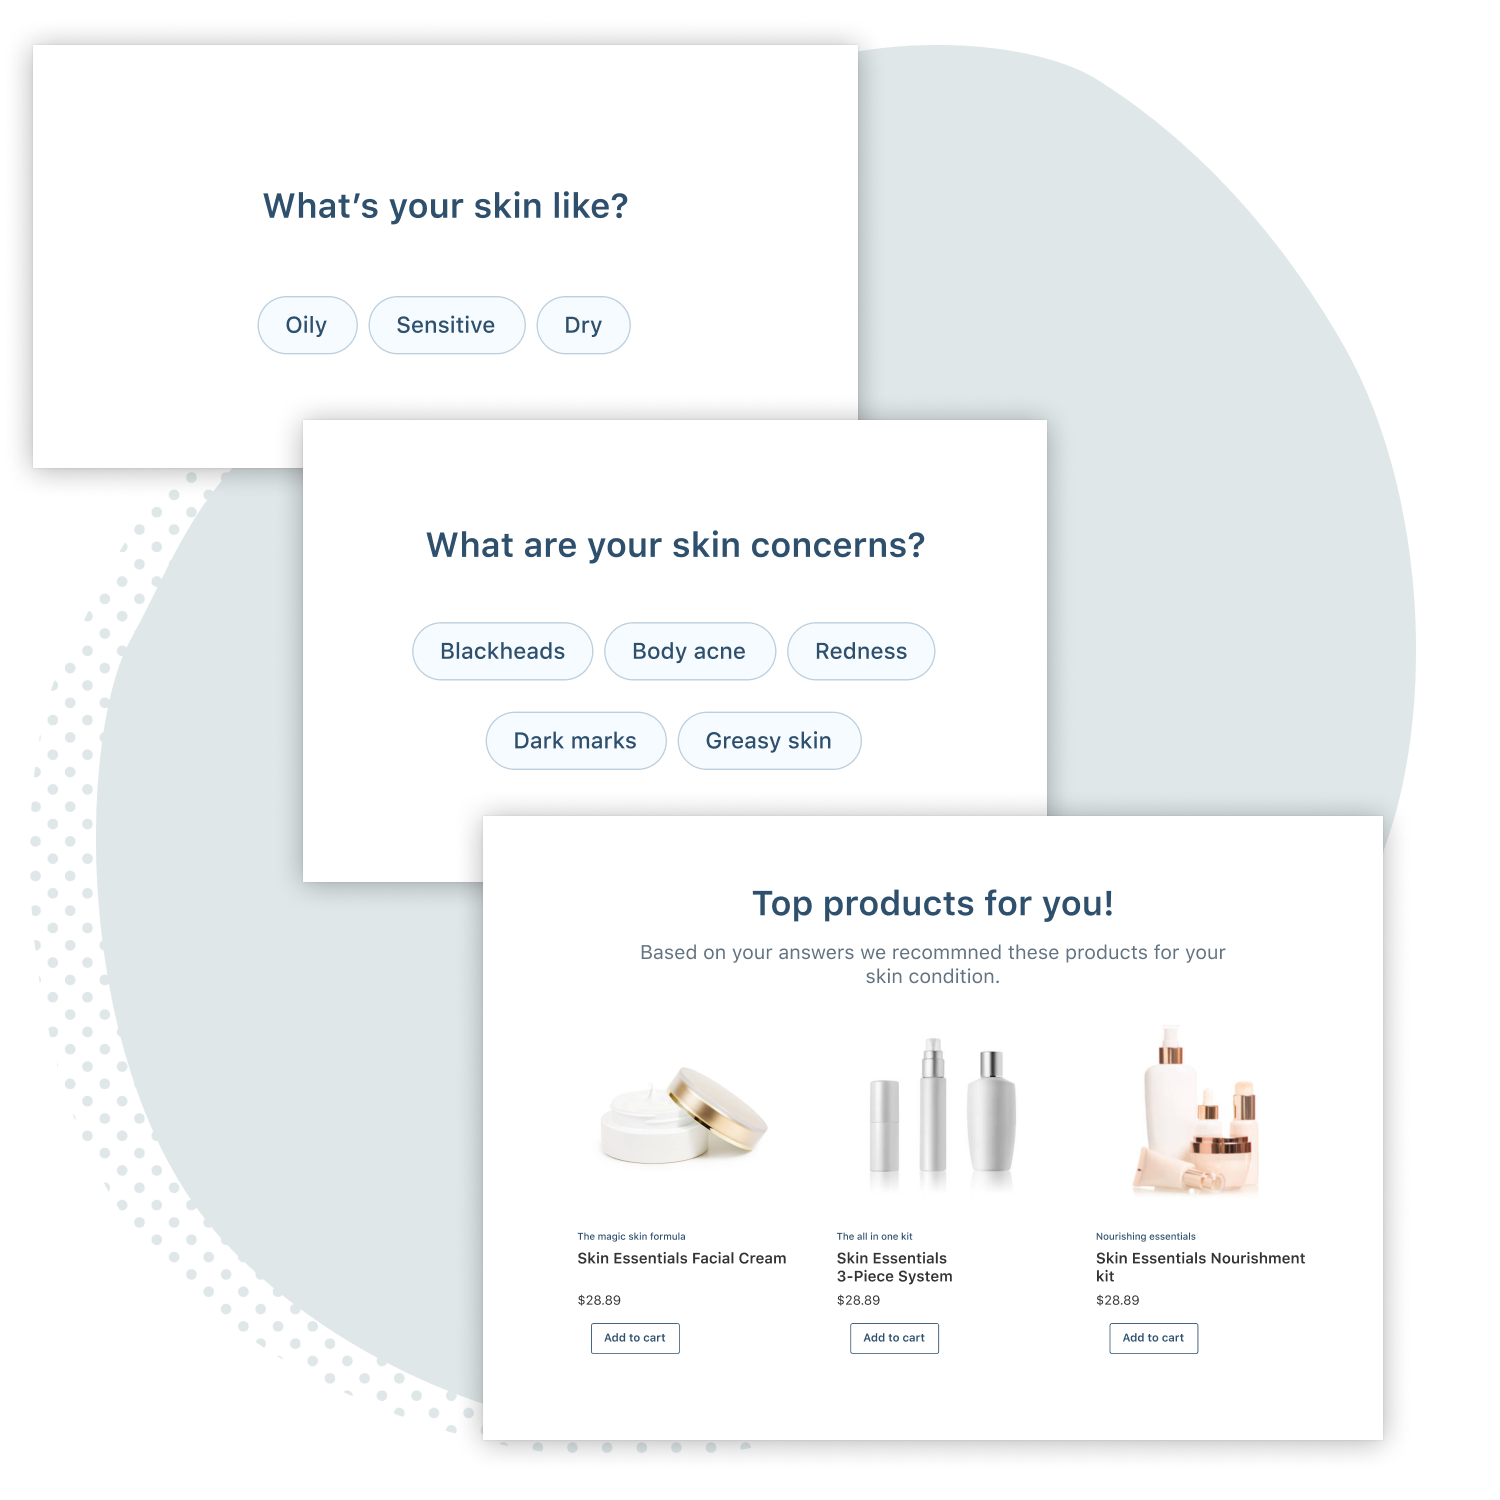 engaging quiz tools for marketing opt-ins